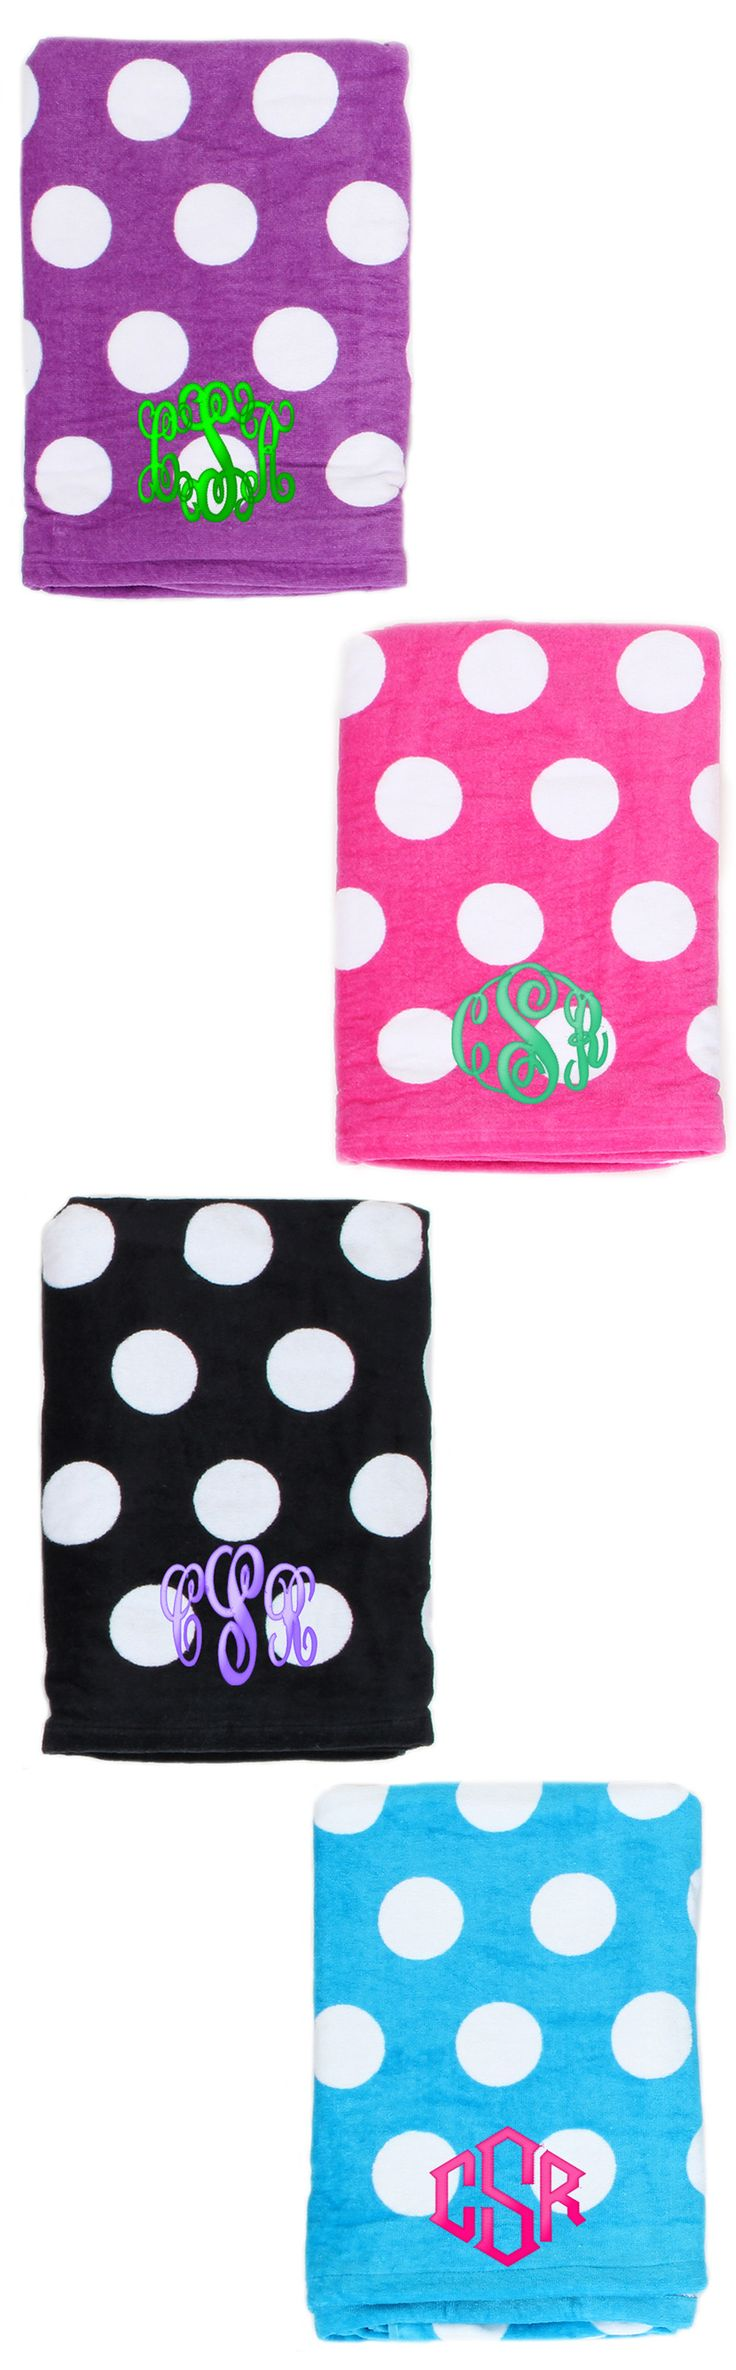 Relax by the pool in style this Summer! Monogrammed Beach Towel from